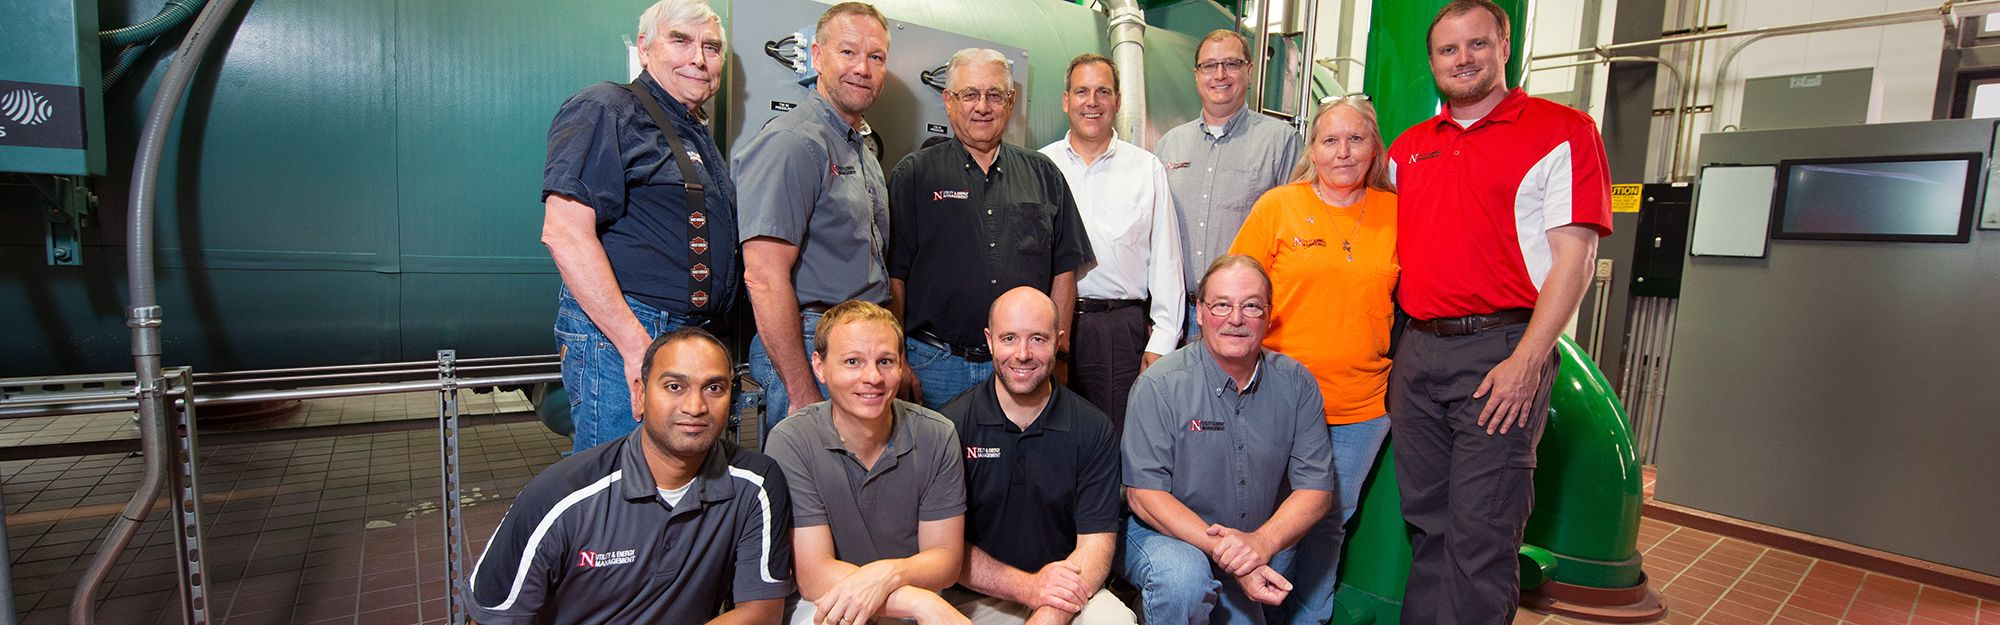 Utility Services Managerial Professional Staff Group Photo